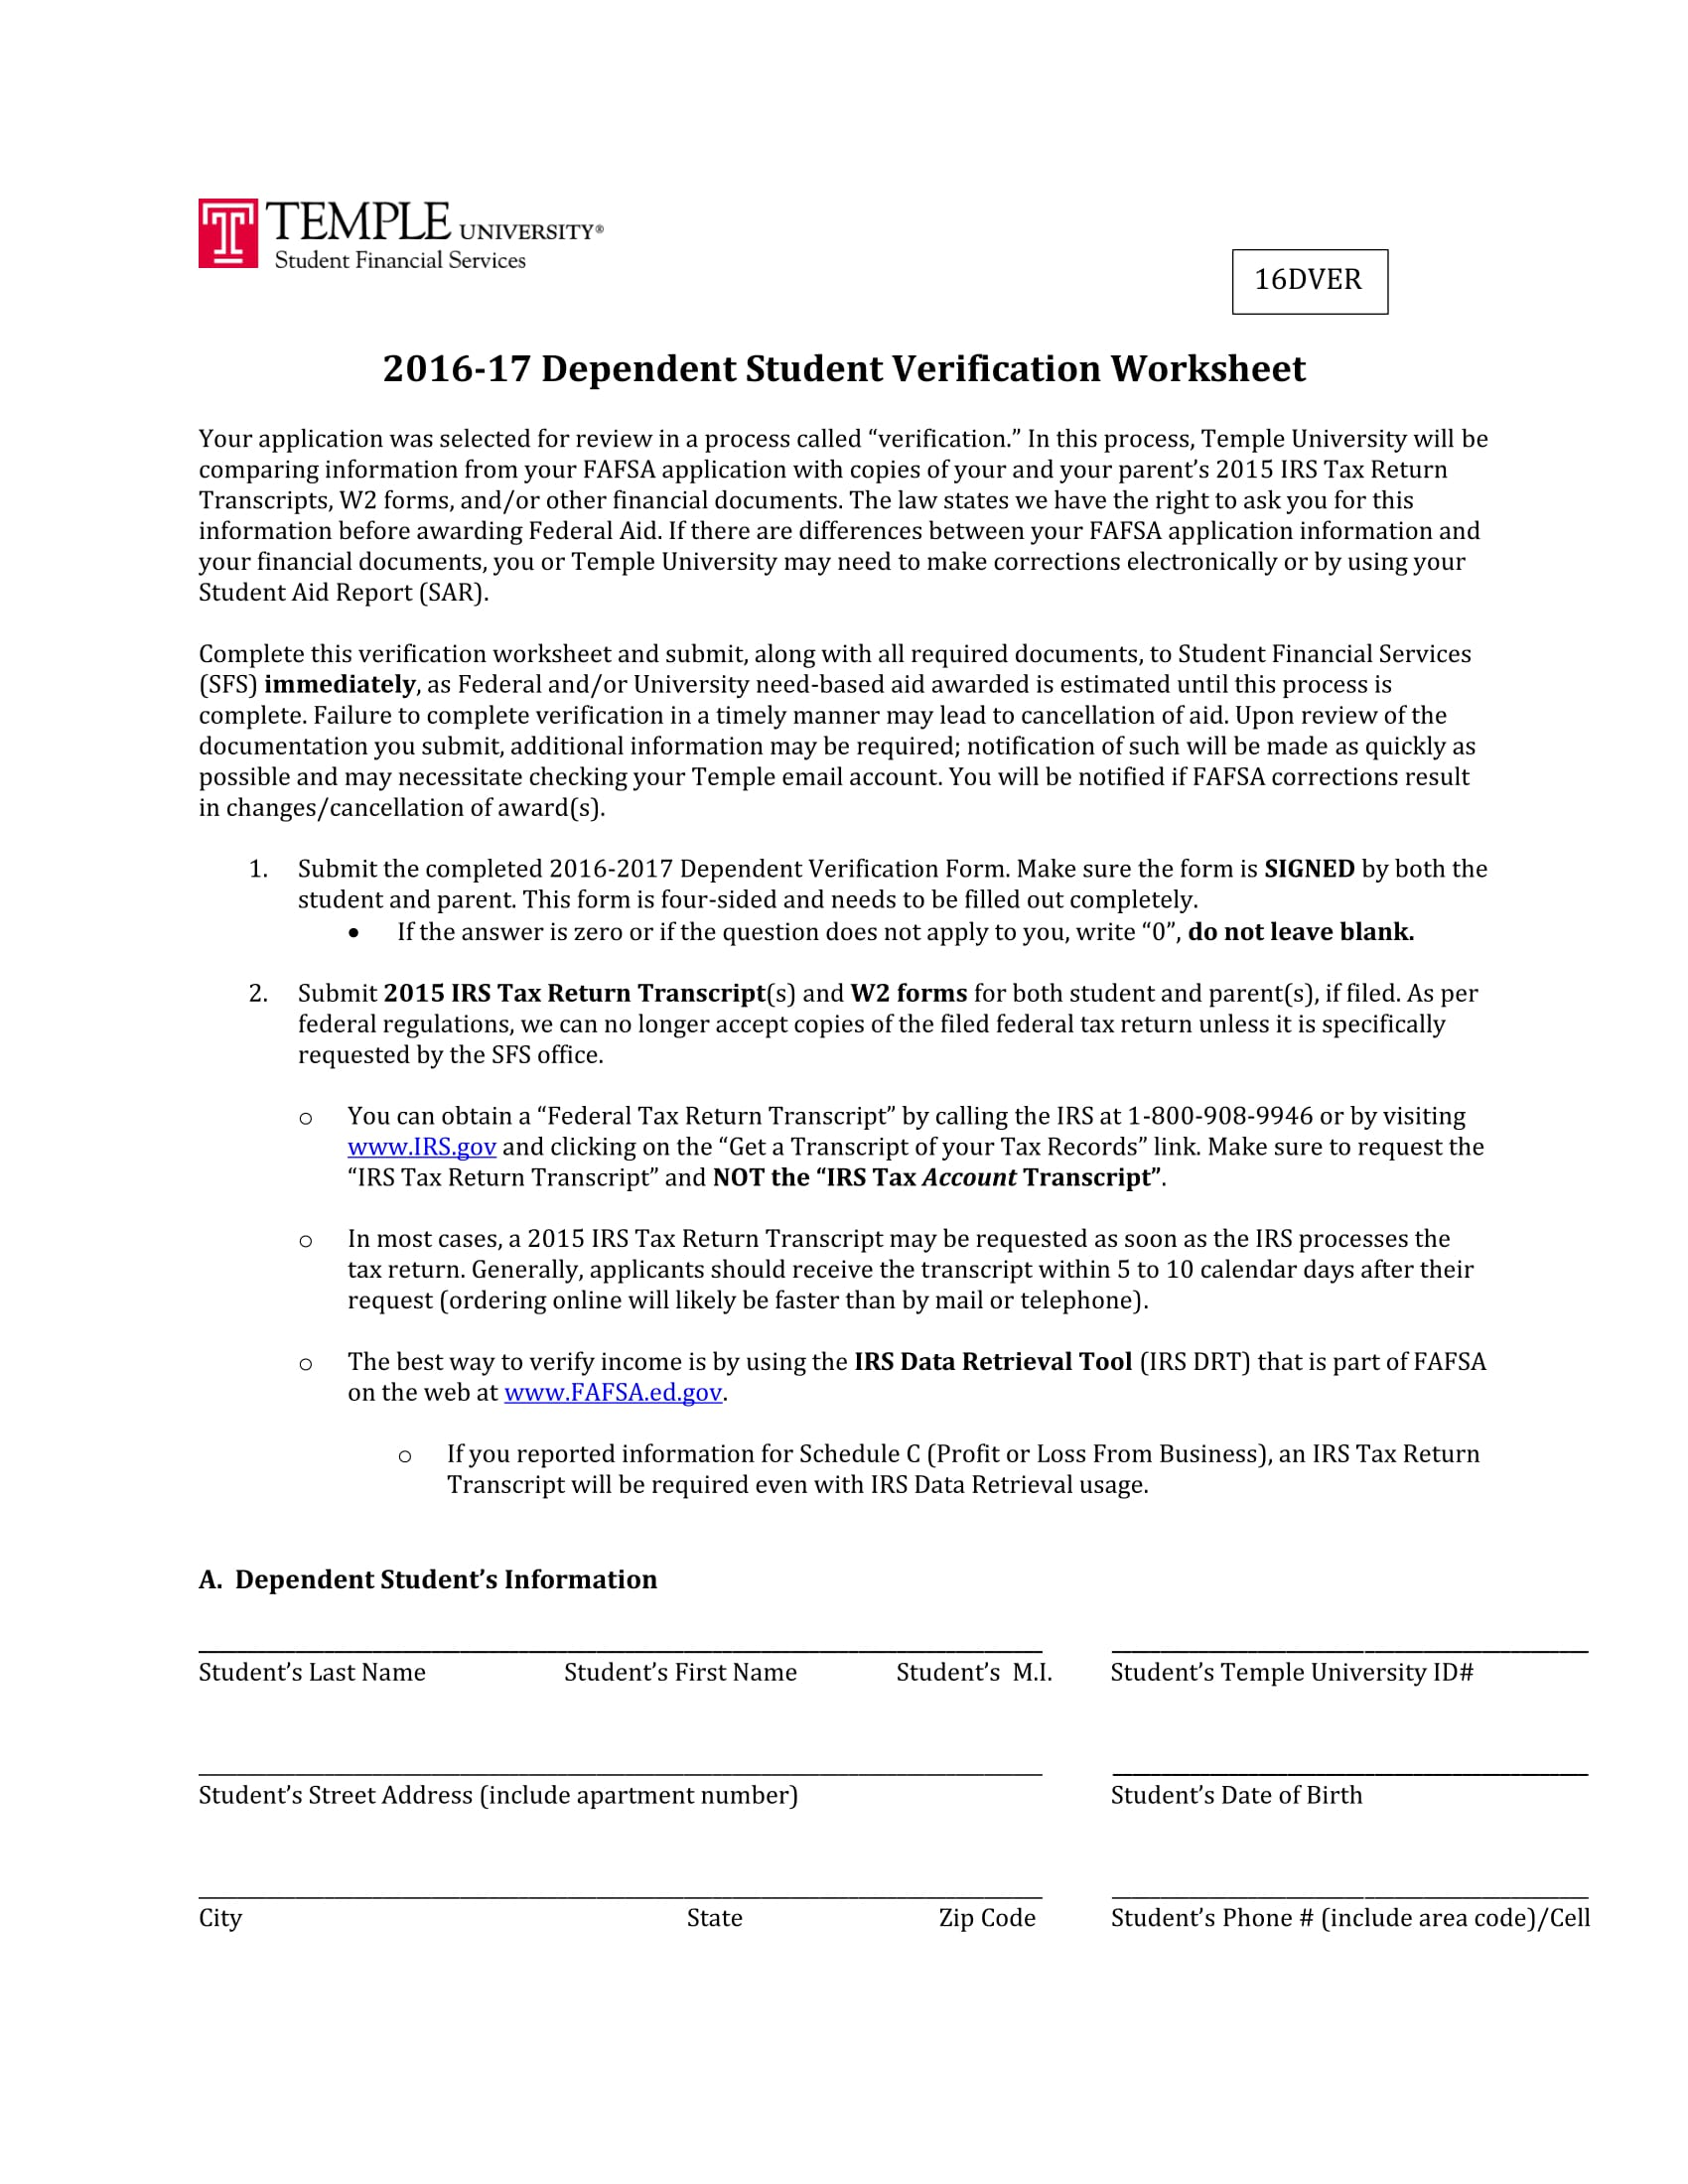 Worksheet Verification Worksheet Dependent Student Worksheet Fun Worksheet Study Site